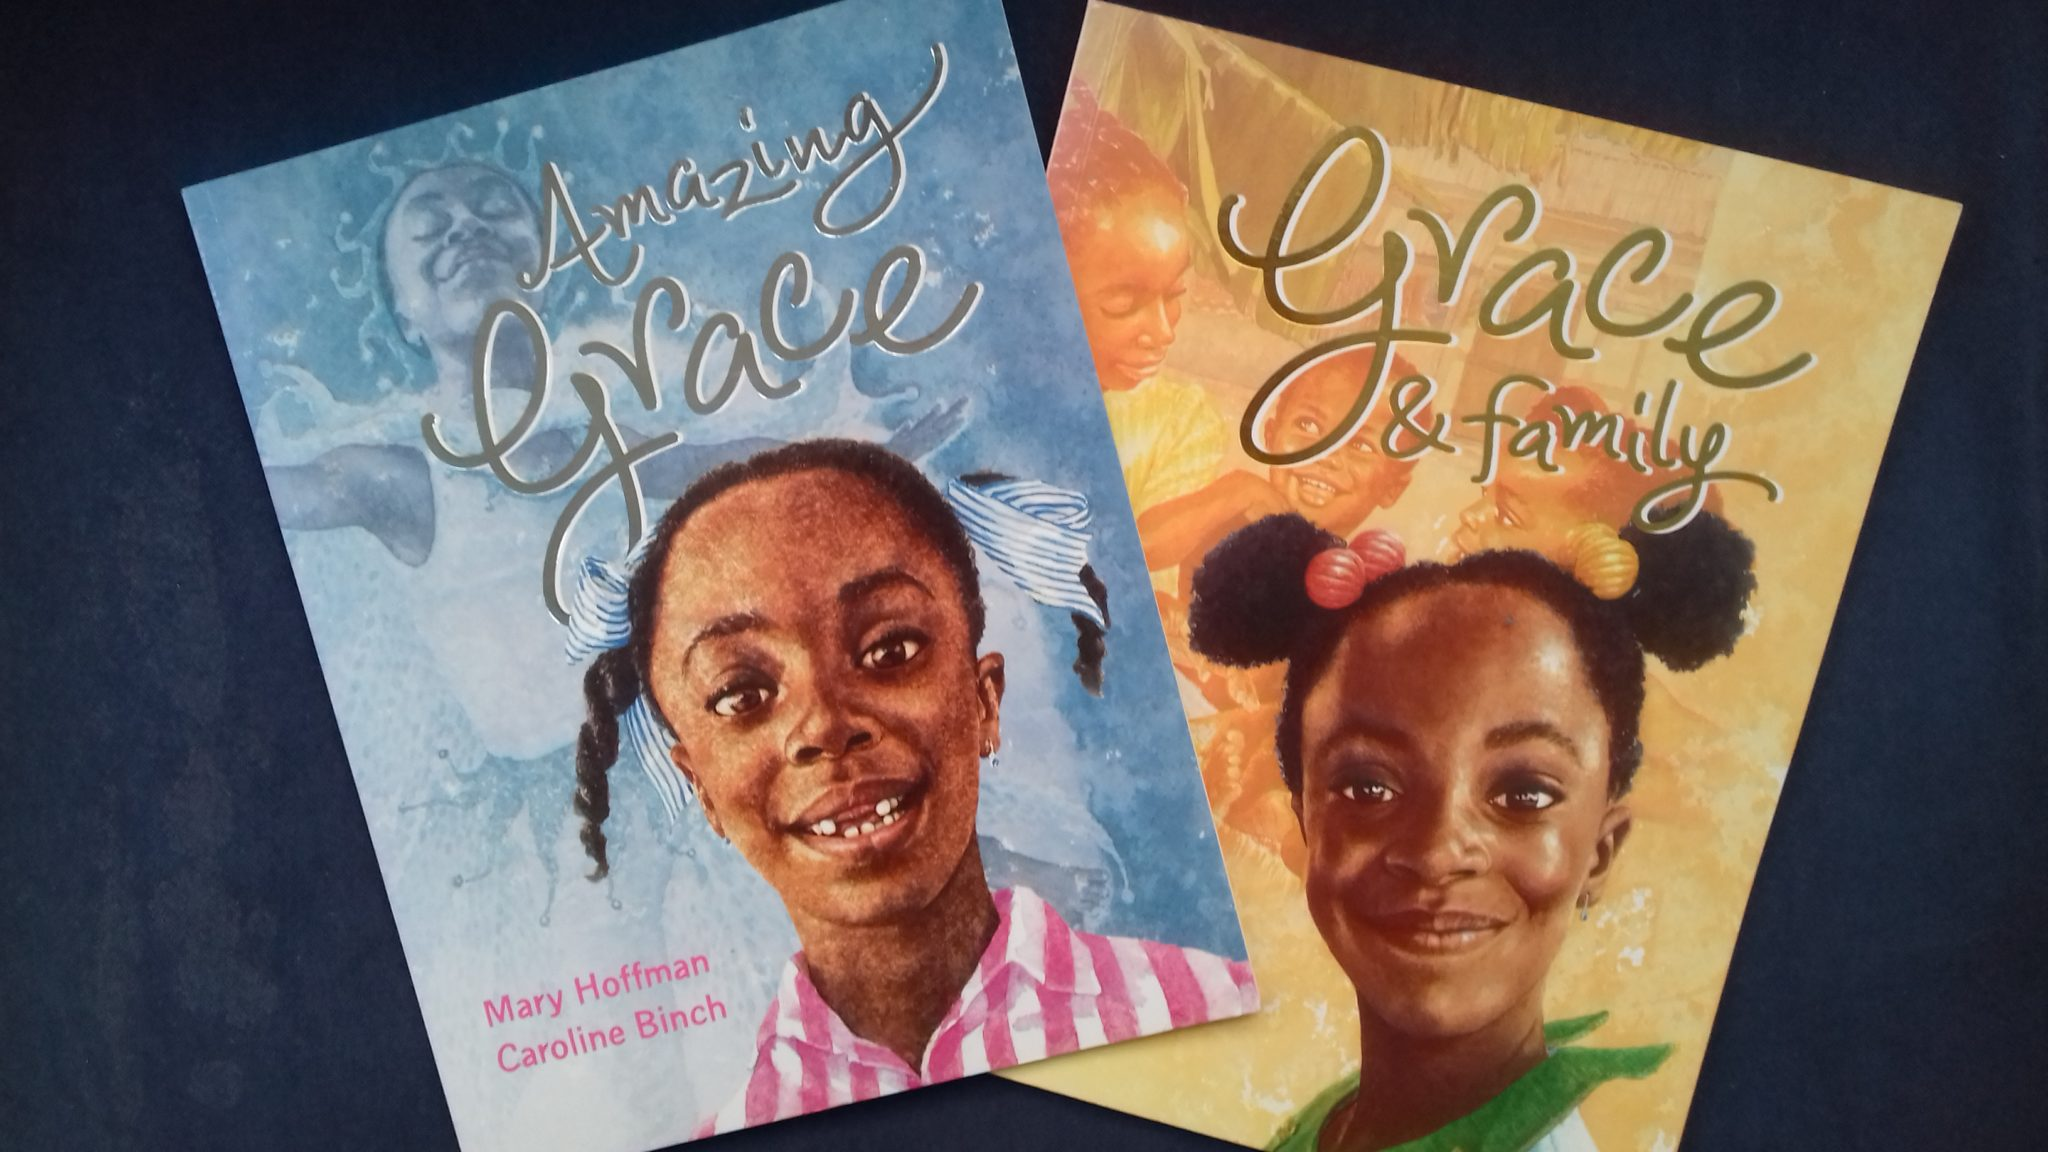 Amazing Grace and Grace & Family - Check out this list of 25+ cultural diversity books for children, all tried and tested by our own family.